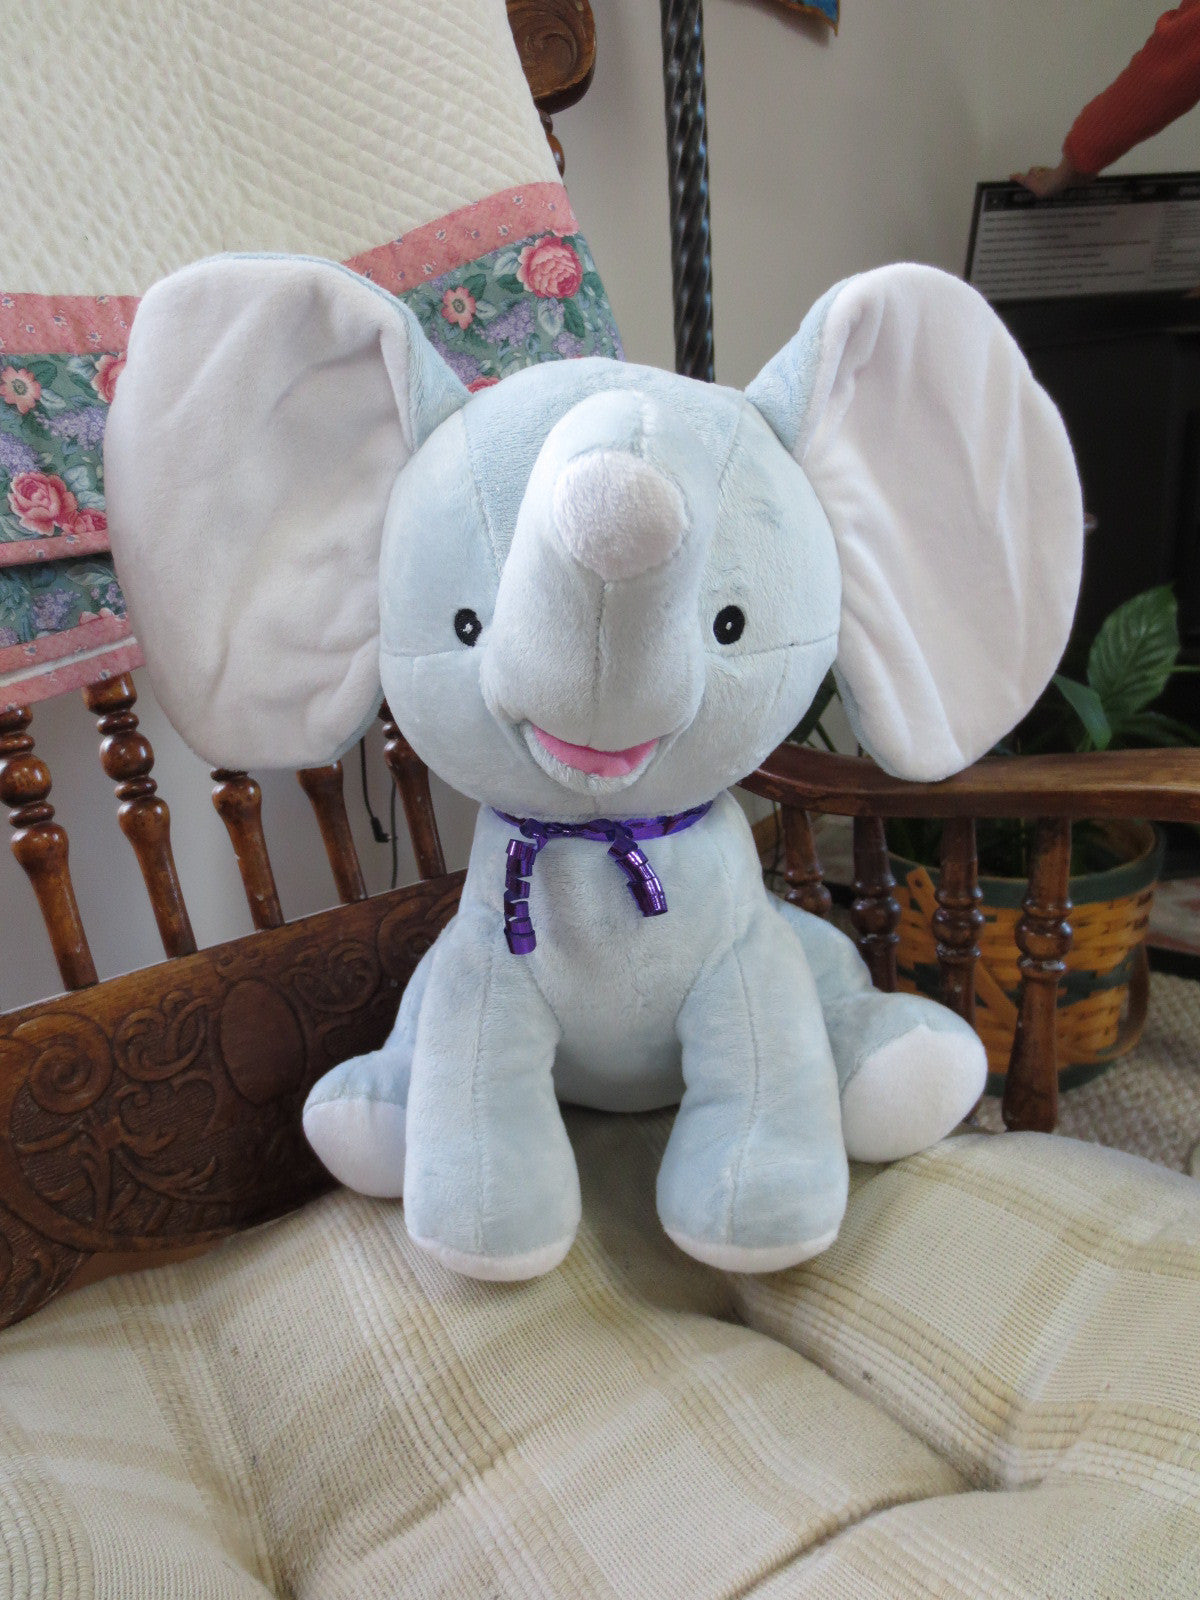 Adorable Elephant Stuffed Animal